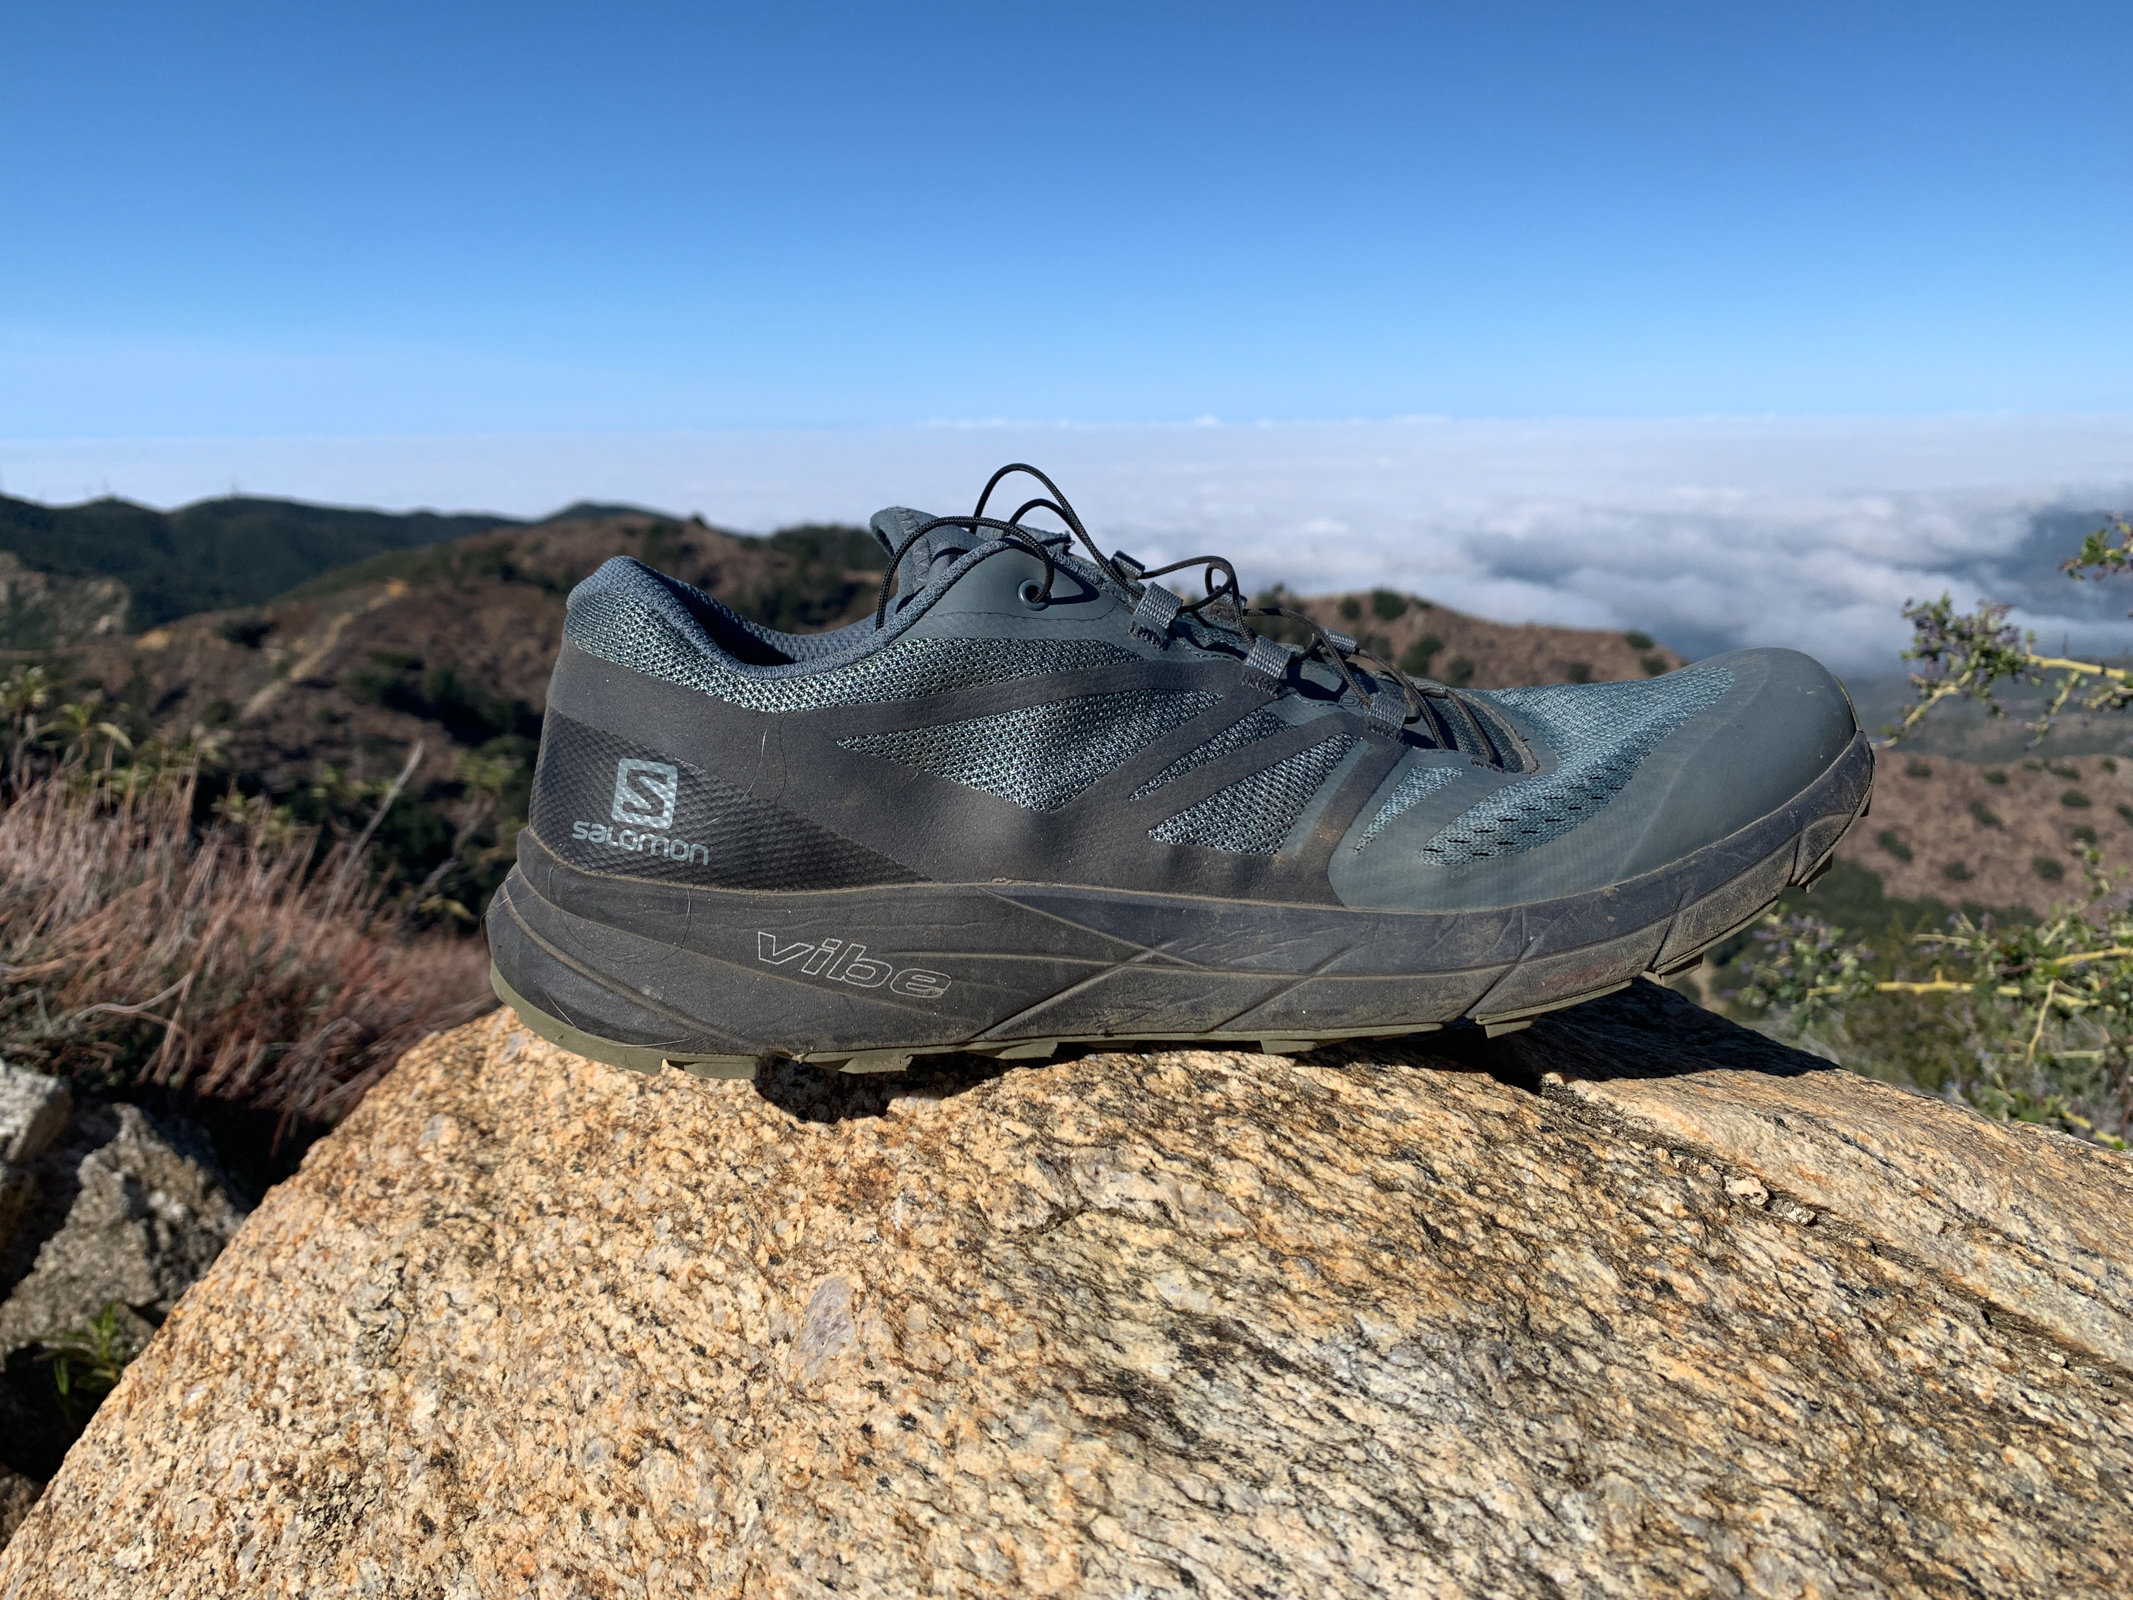 Gear Review: Salomon Sense Ride 2 Trail Shoe Trail to Peak